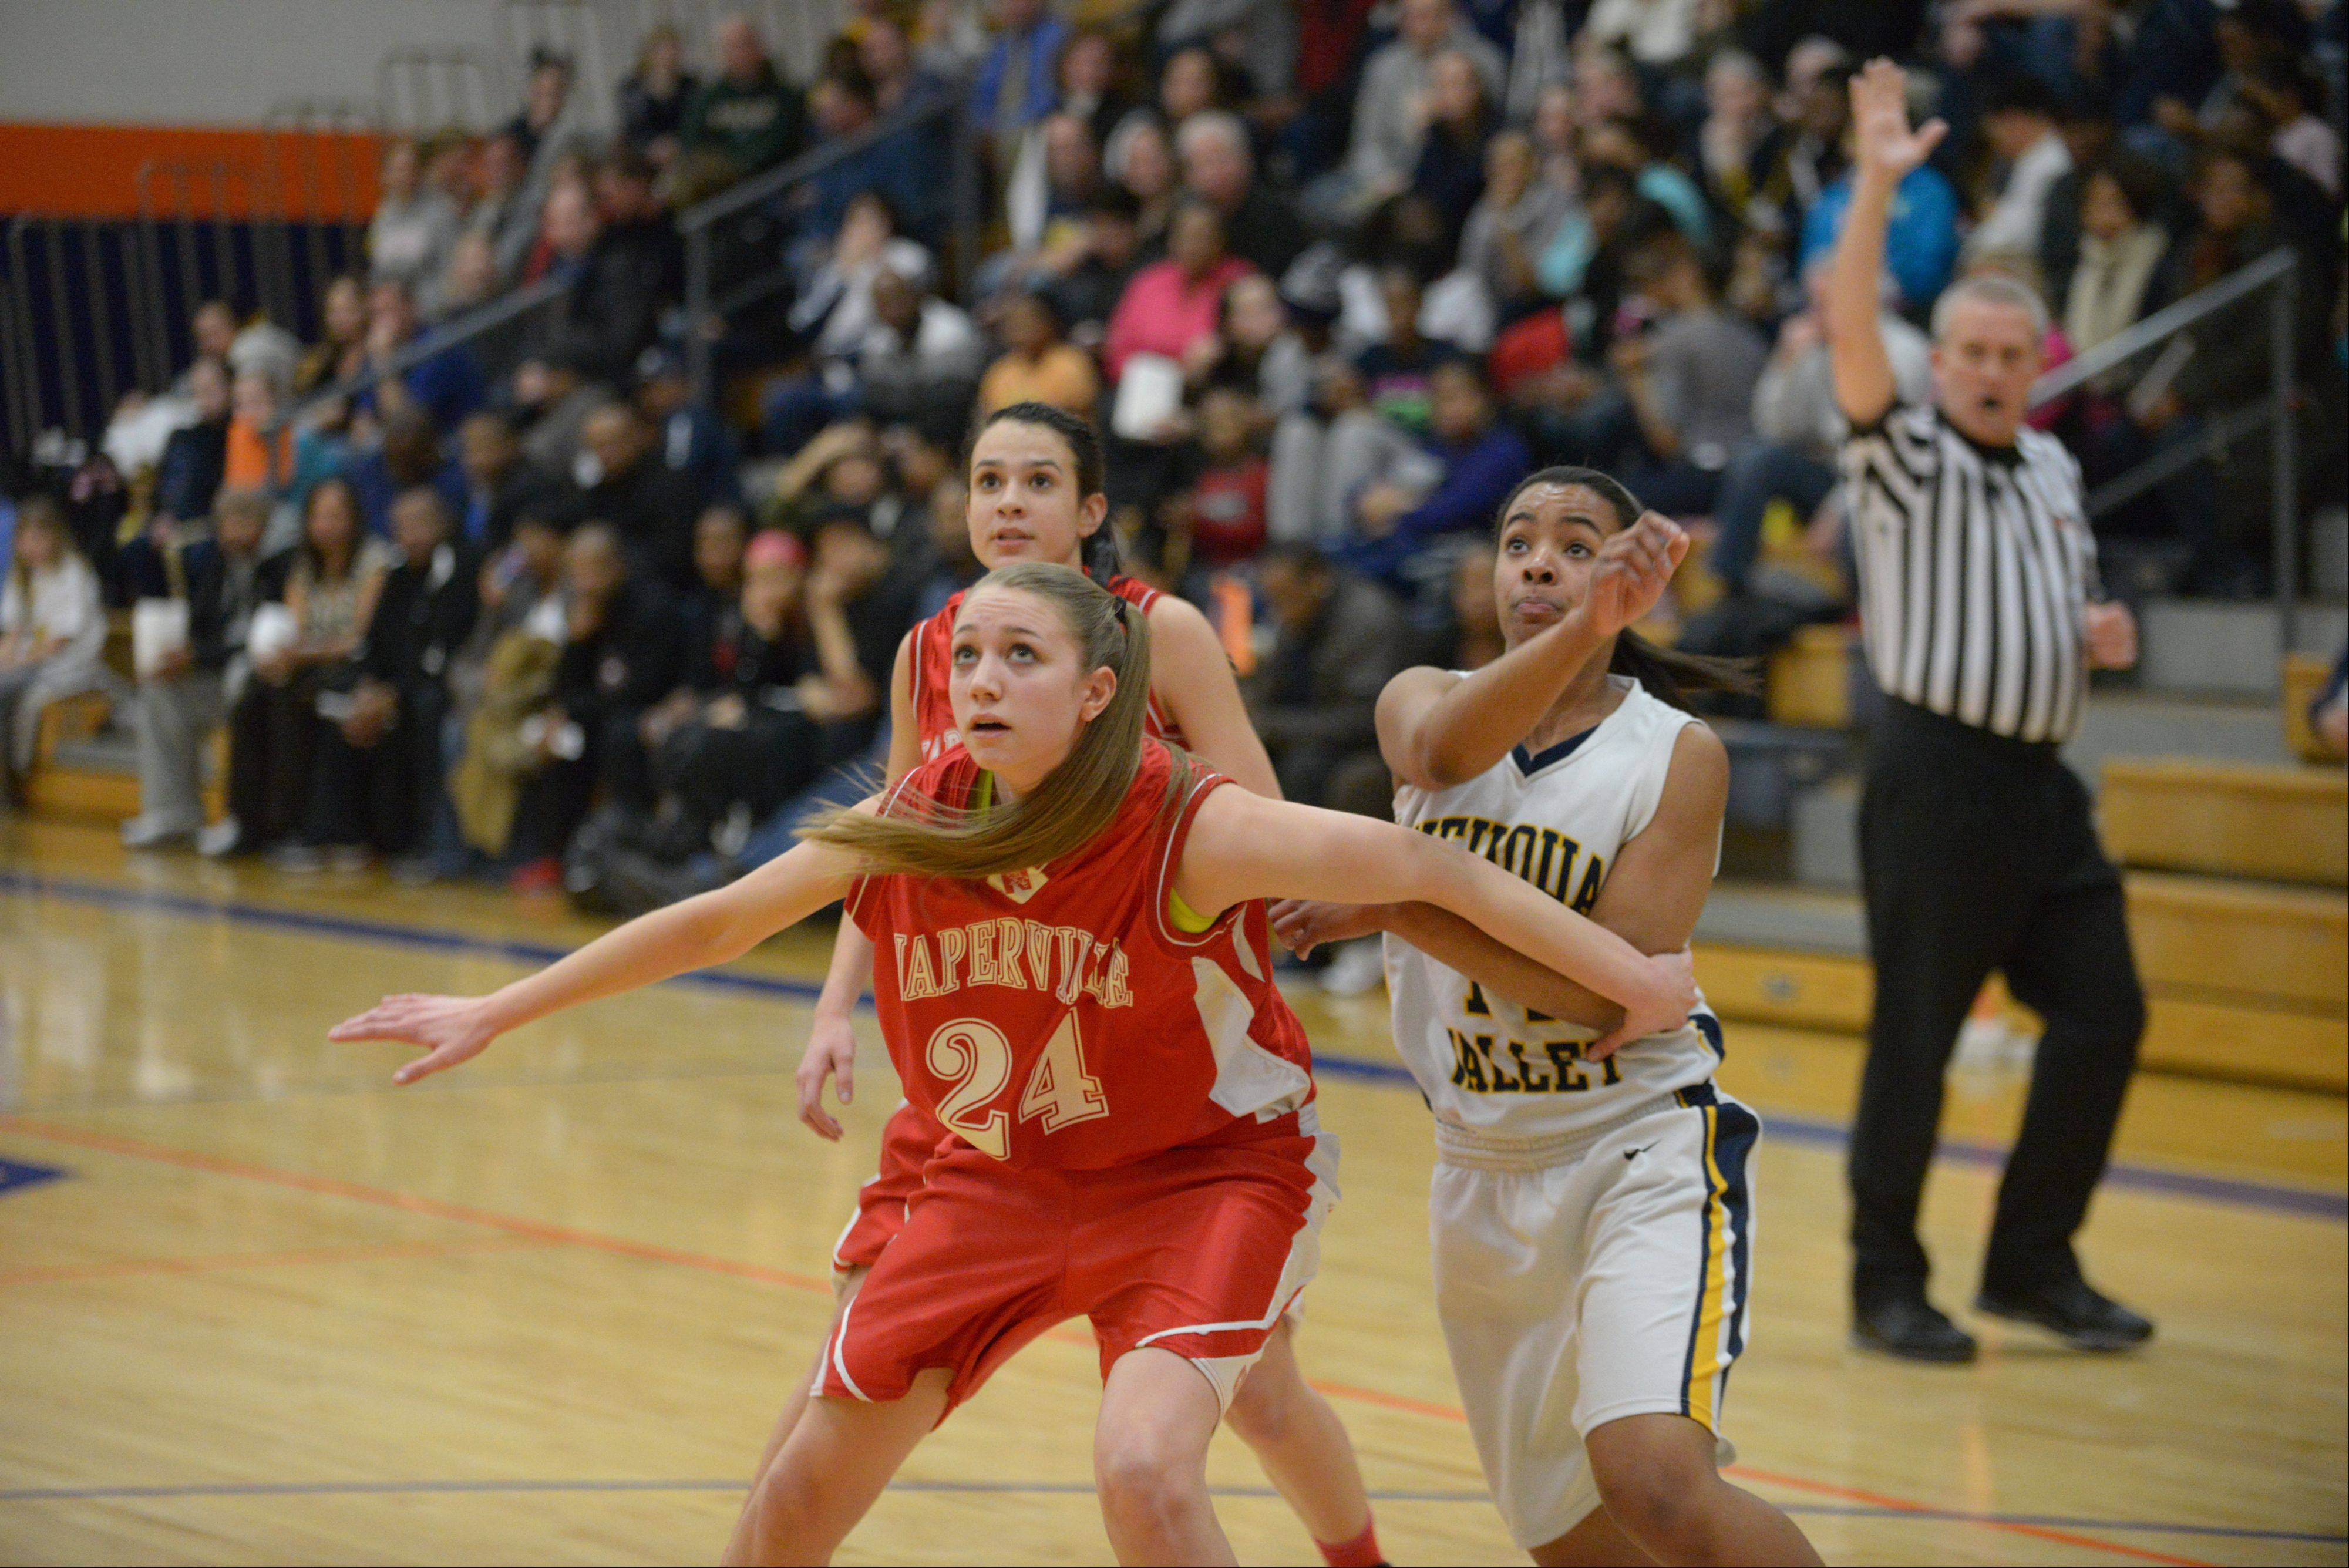 Images: Naperville Central vs. Neuqua Valley, girls basketball